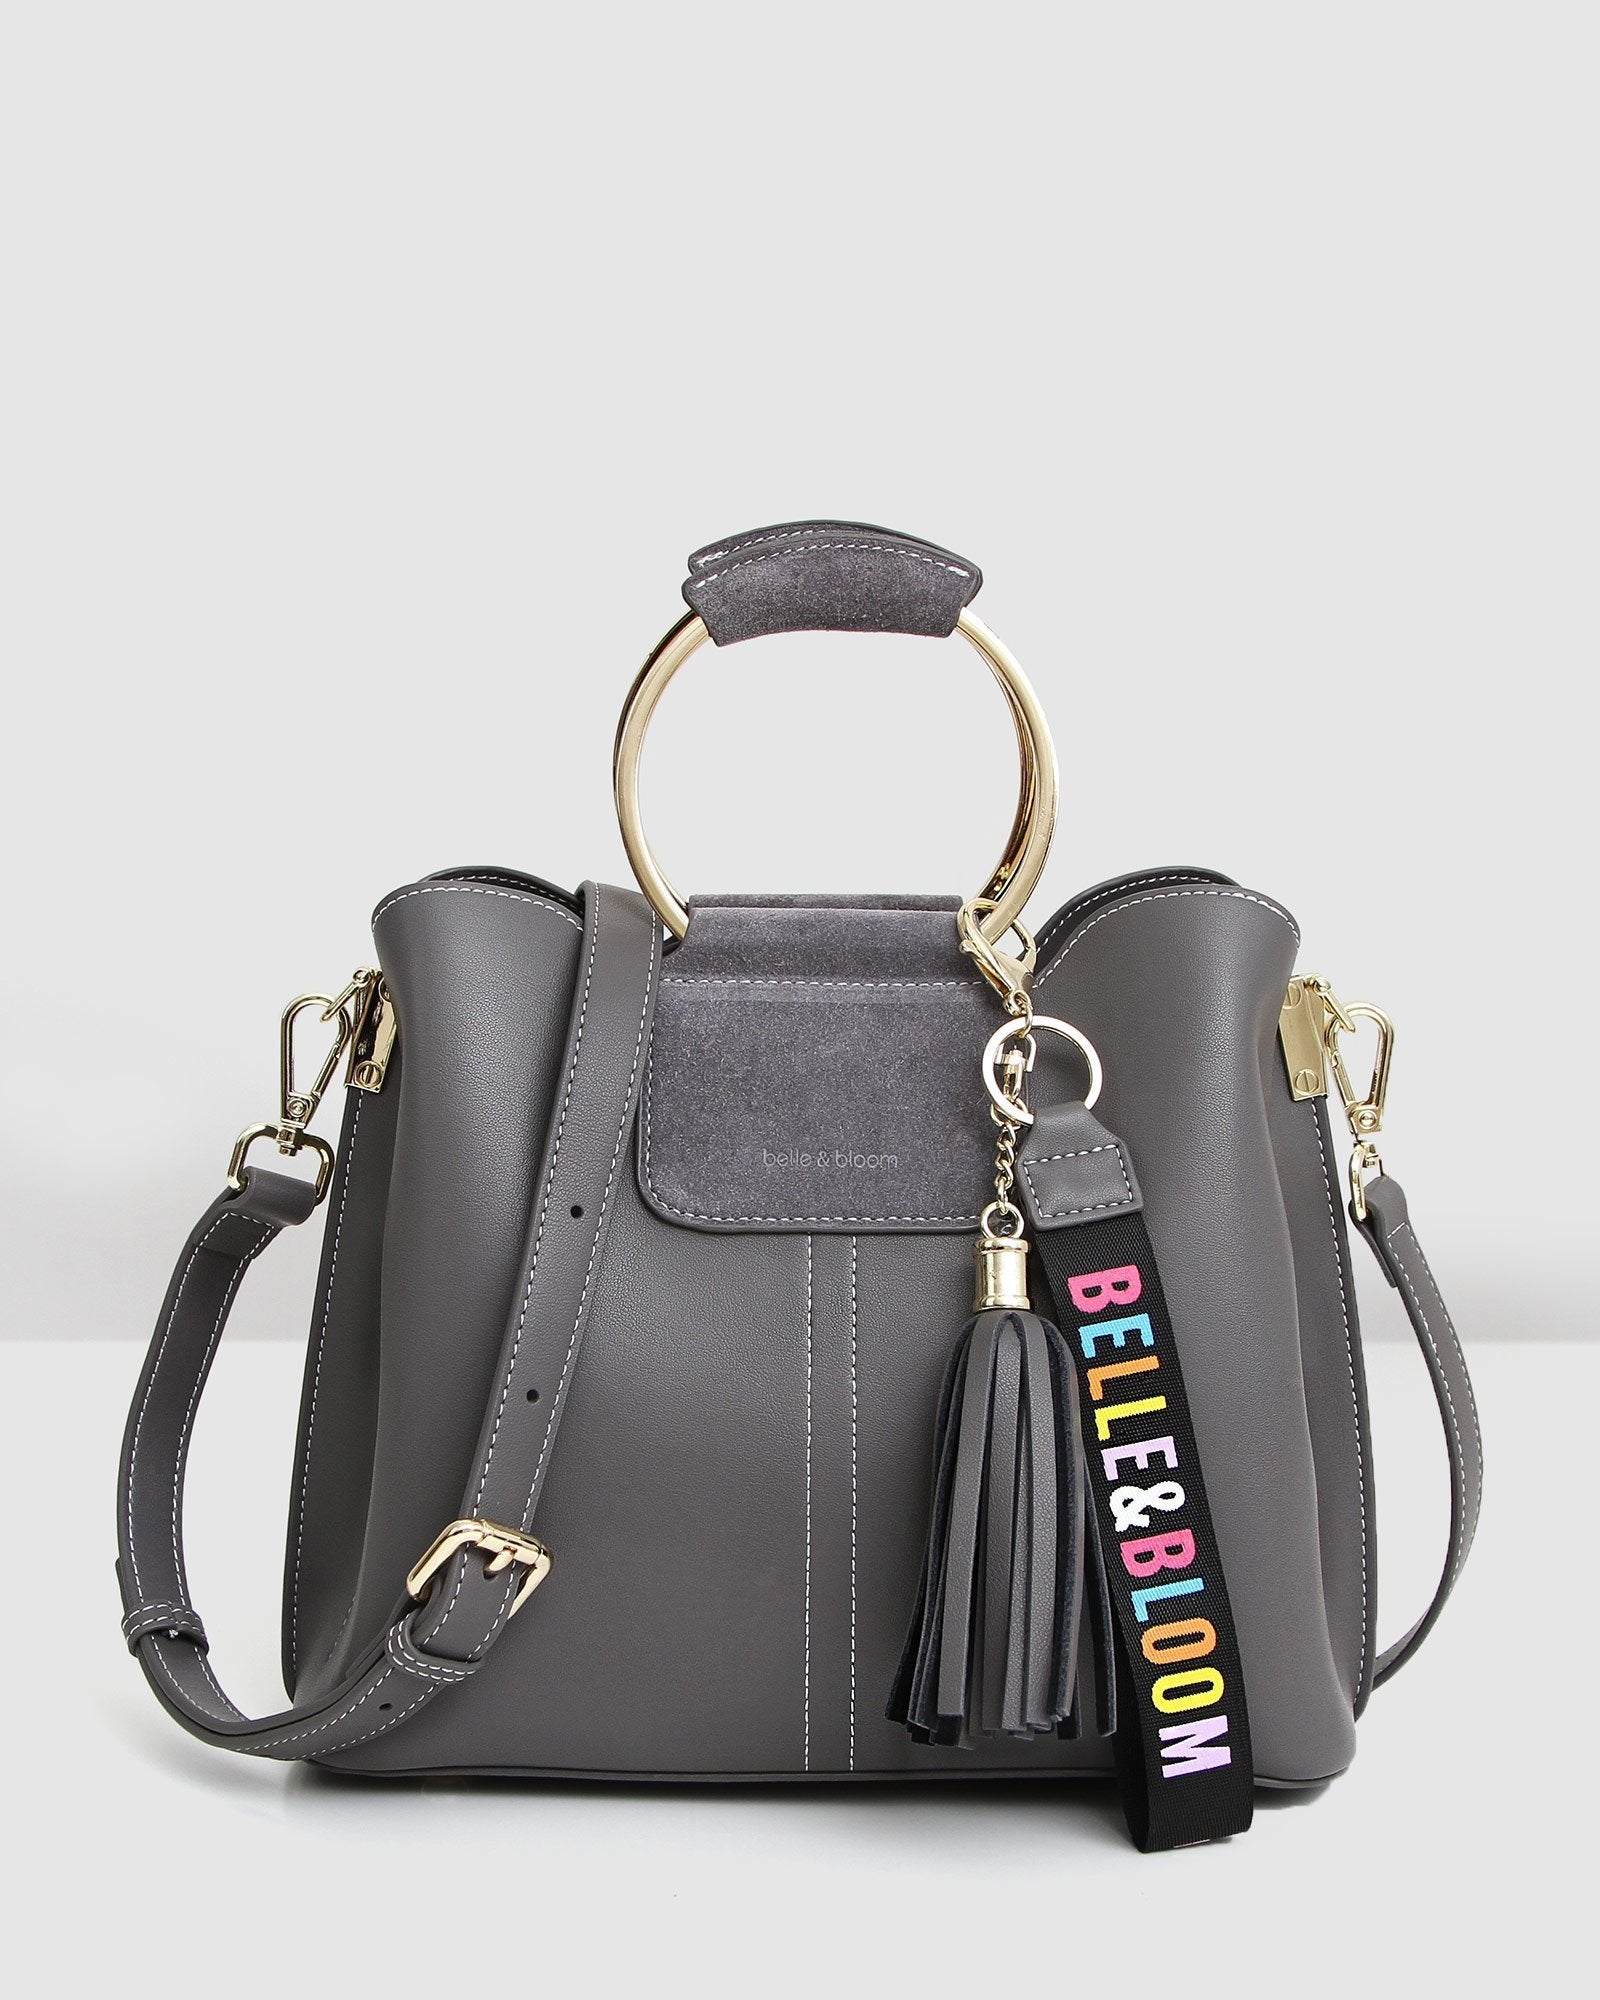 Twilight Leather Cross-Body Bag - Ash